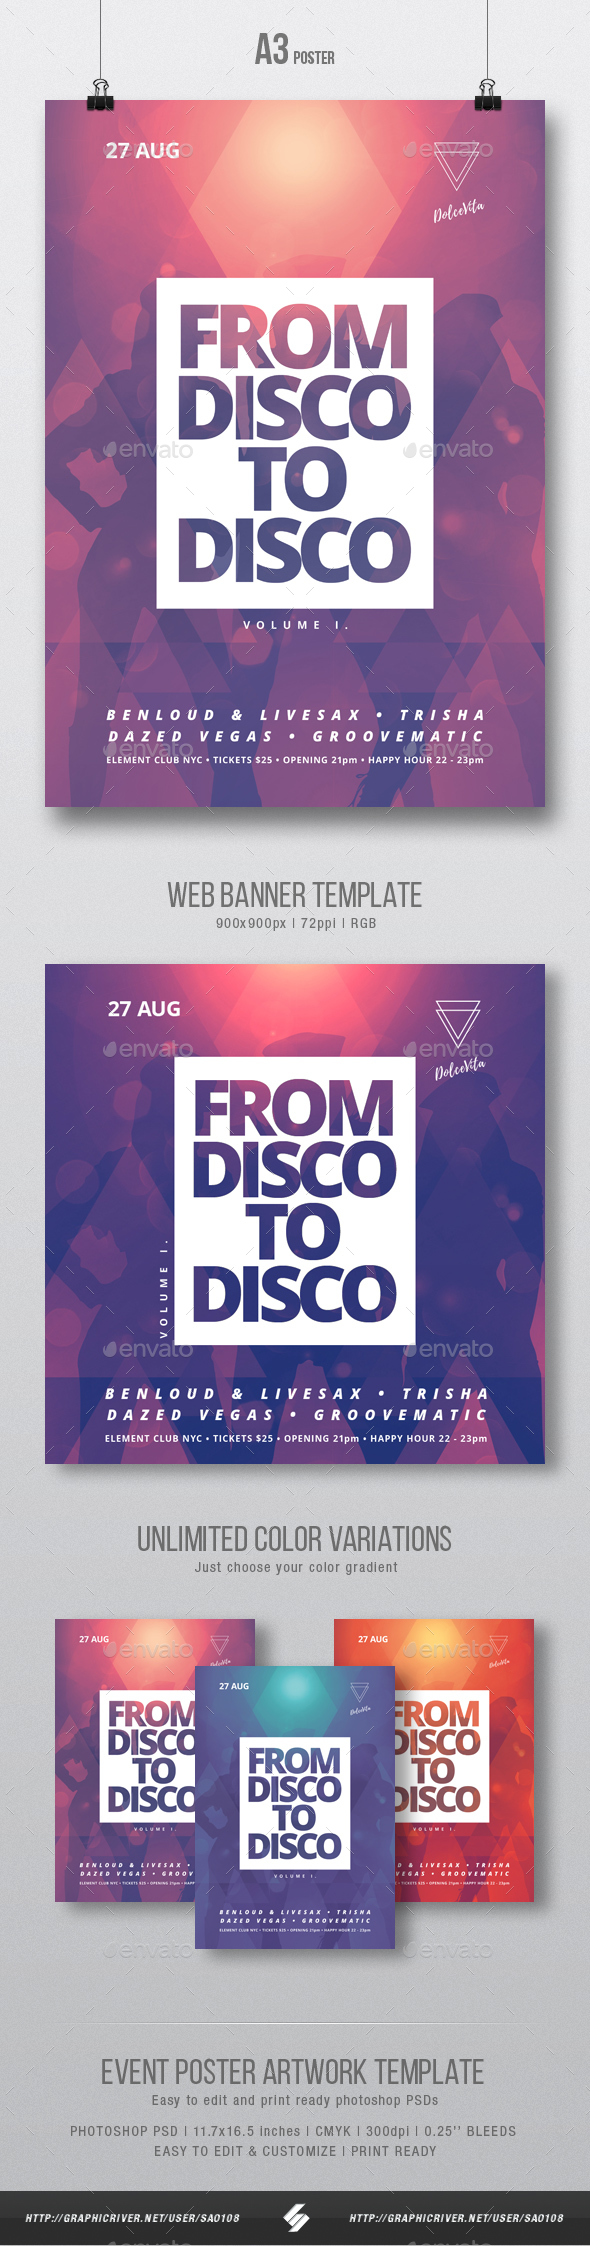 Disco 2 Disco - Party Flyer / Poster Artwork Template A3 - Clubs & Parties Events